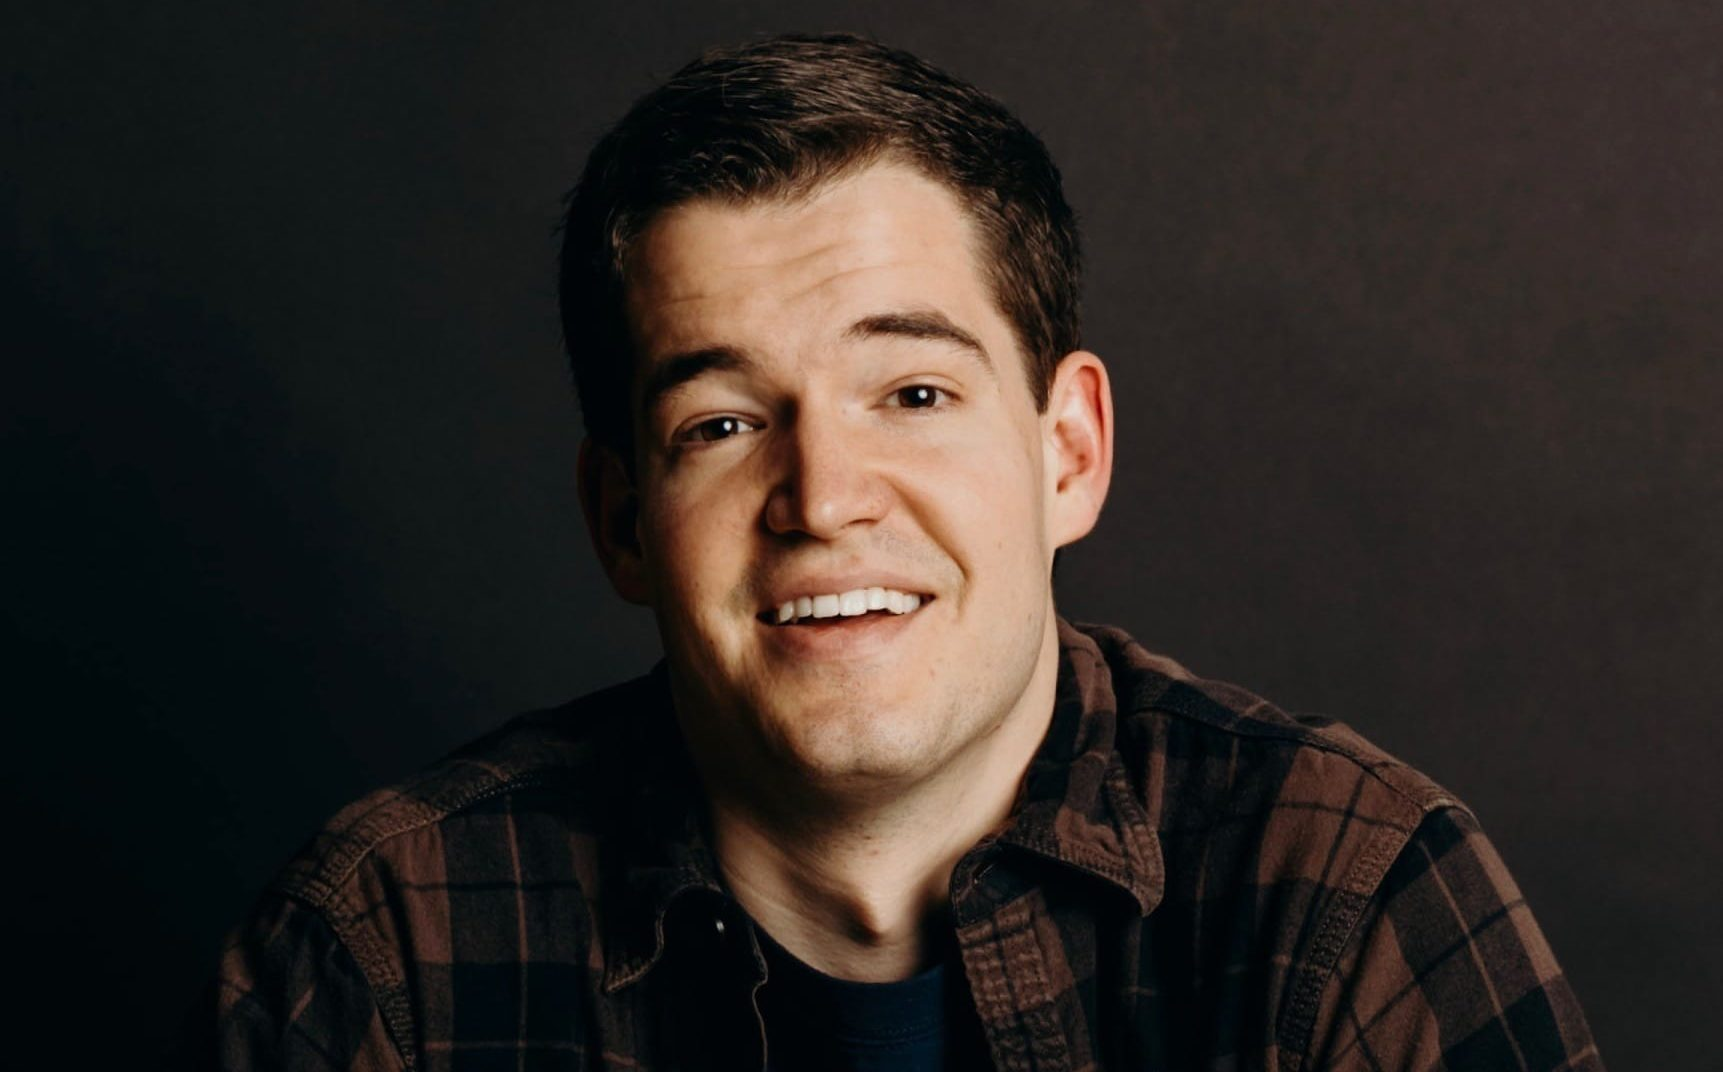 CNLP 259: Andrew Stanley on Making the Move from a Career in Finance to Full Time Stand-Up Comedy, Why and How Comedy Works, and on Being Andy Stanley's Son and Charles Stanley's Grandson